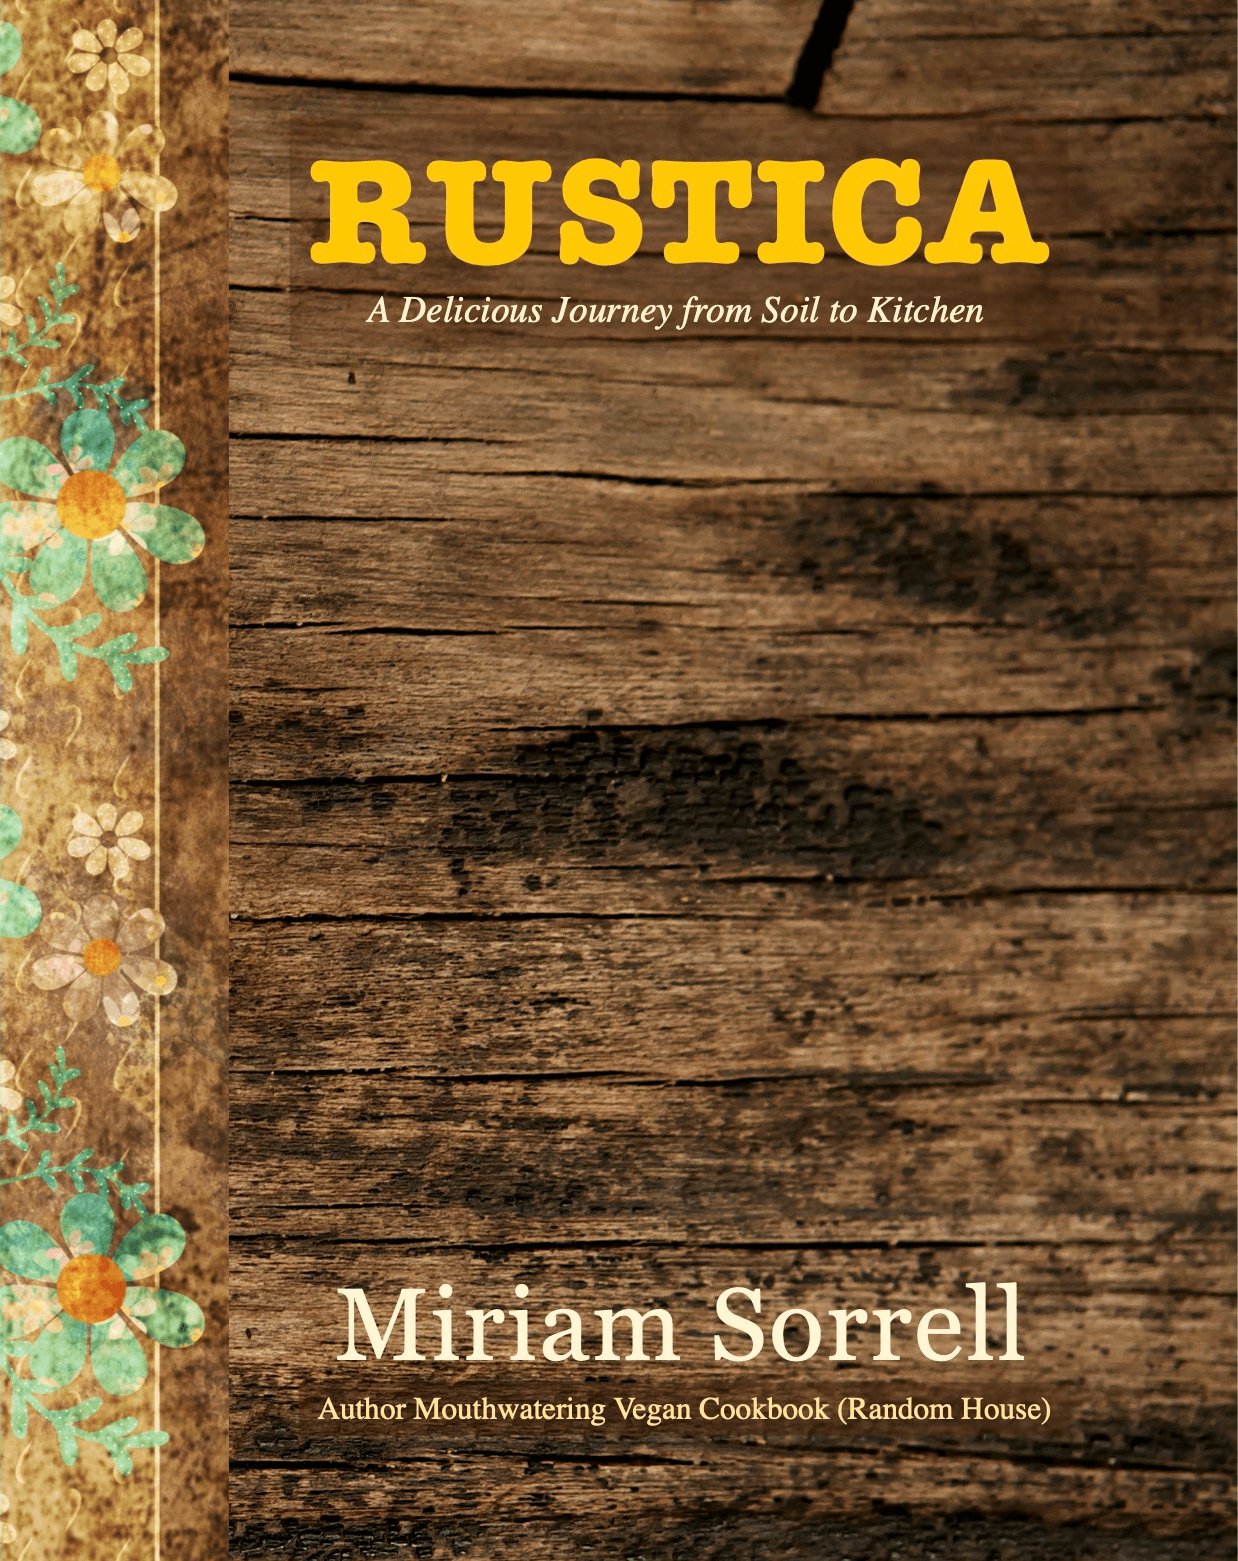 NEW BOOK : 'RUSTICA' – A Delicious Journey from Soil to Kitchen